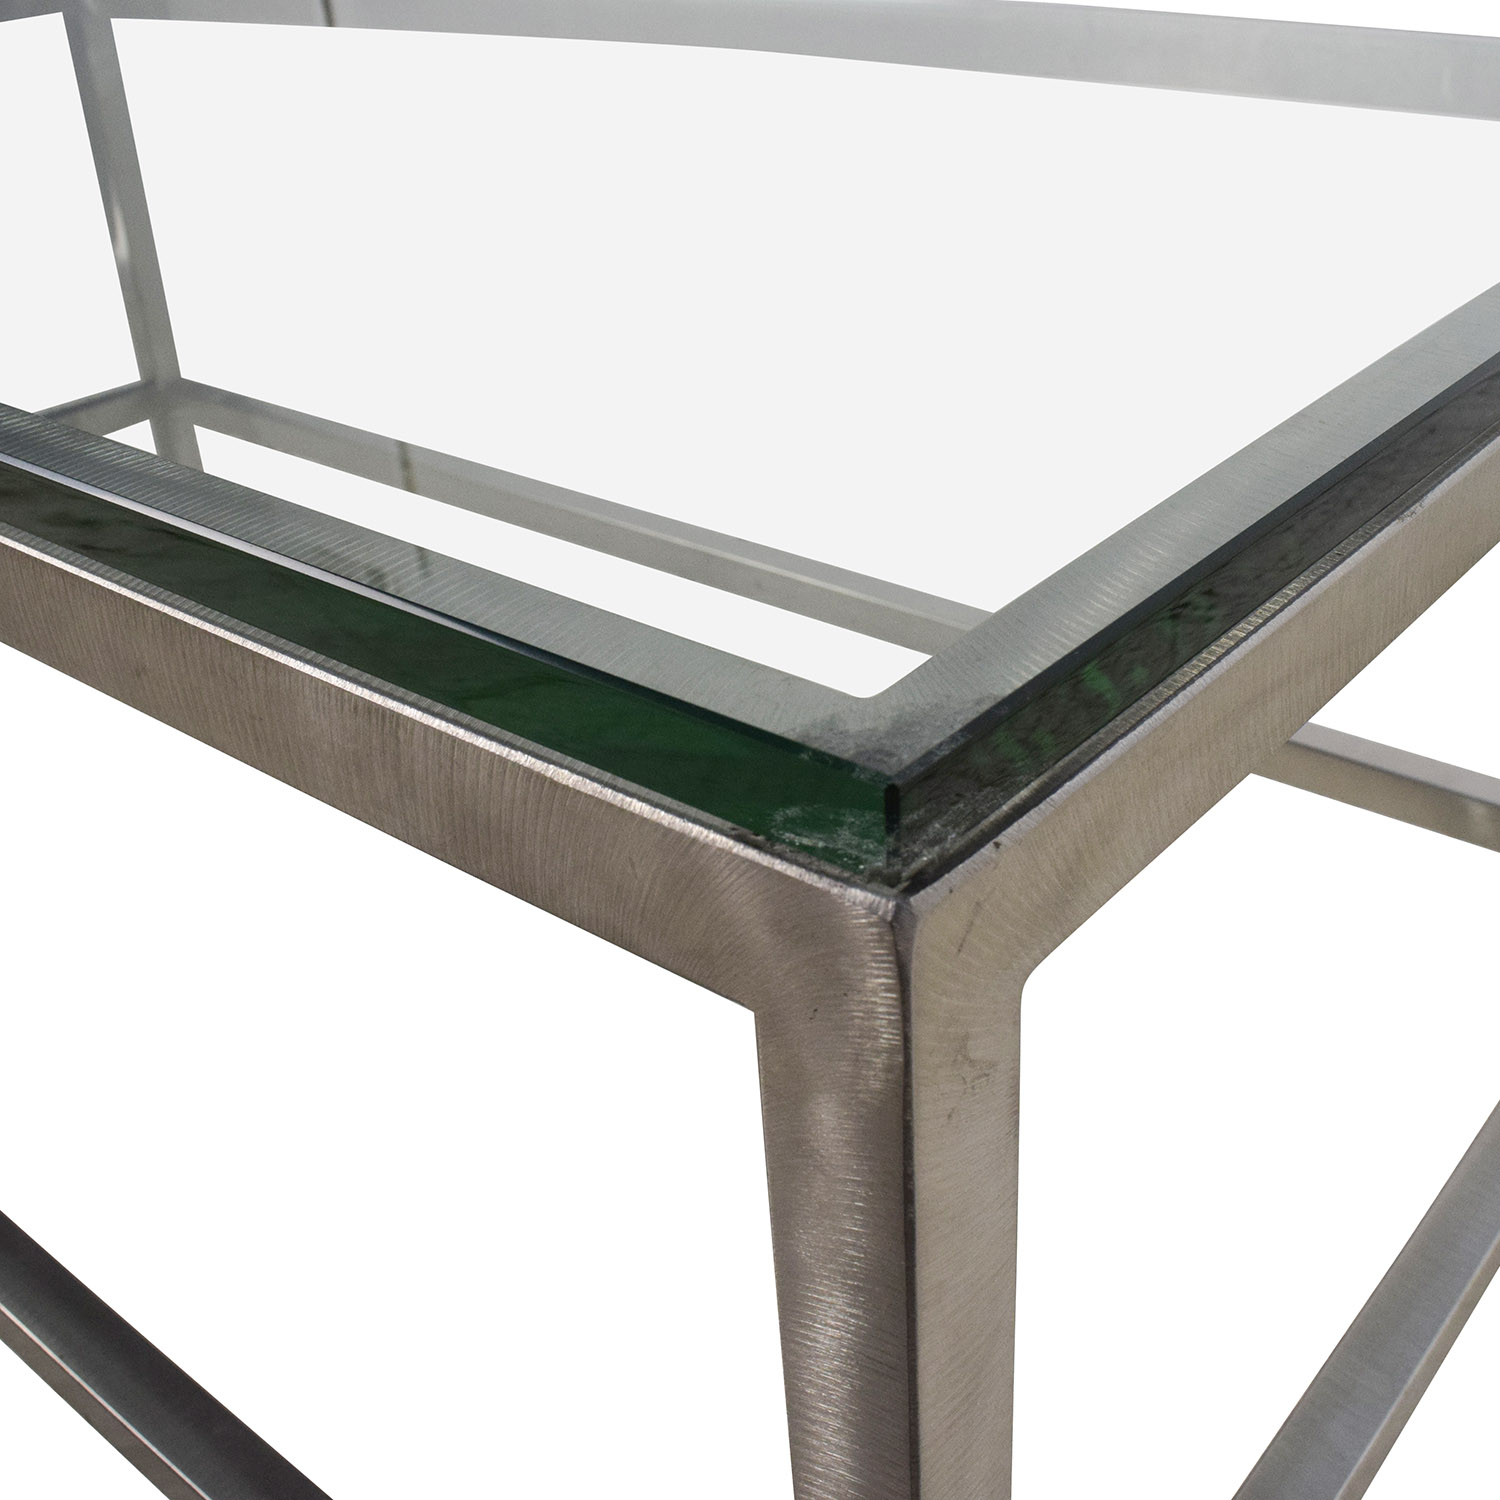 64% Off   Crate And Barrel Crate & Barrel Era Rectangular Glass Top With Regard To Era Glass Console Tables (Photo 27 of 30)